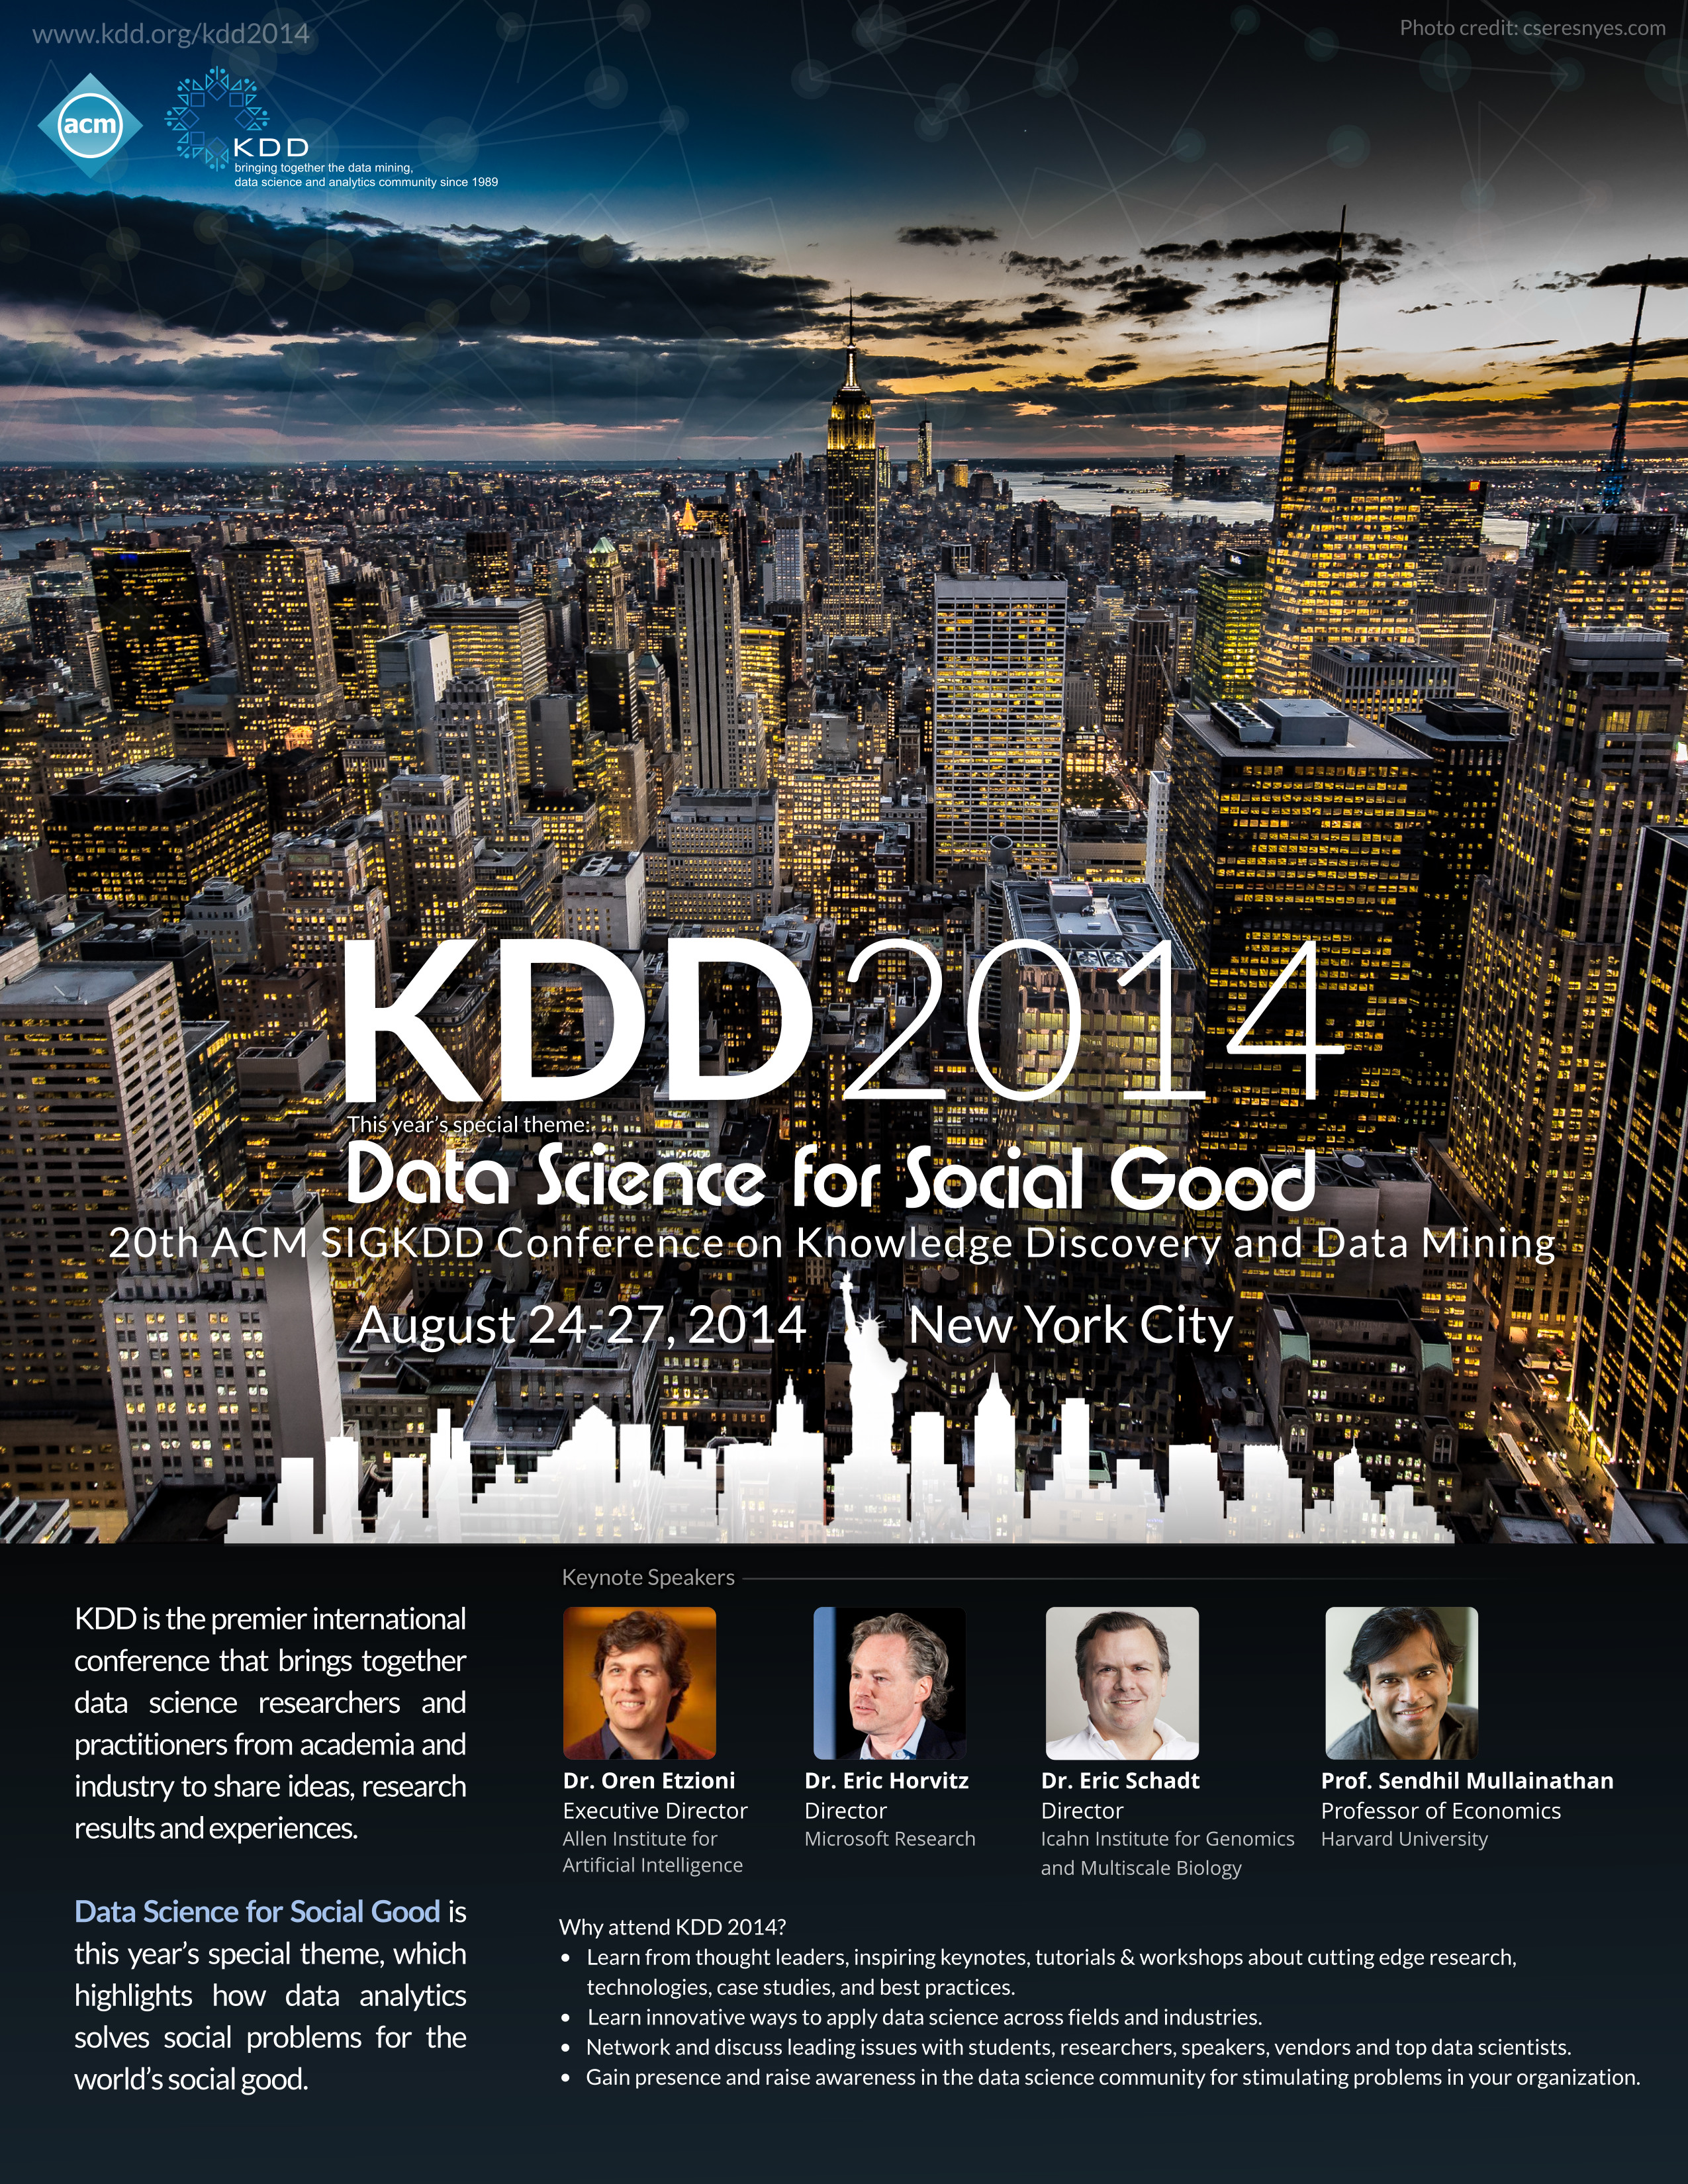 kdd14_poster